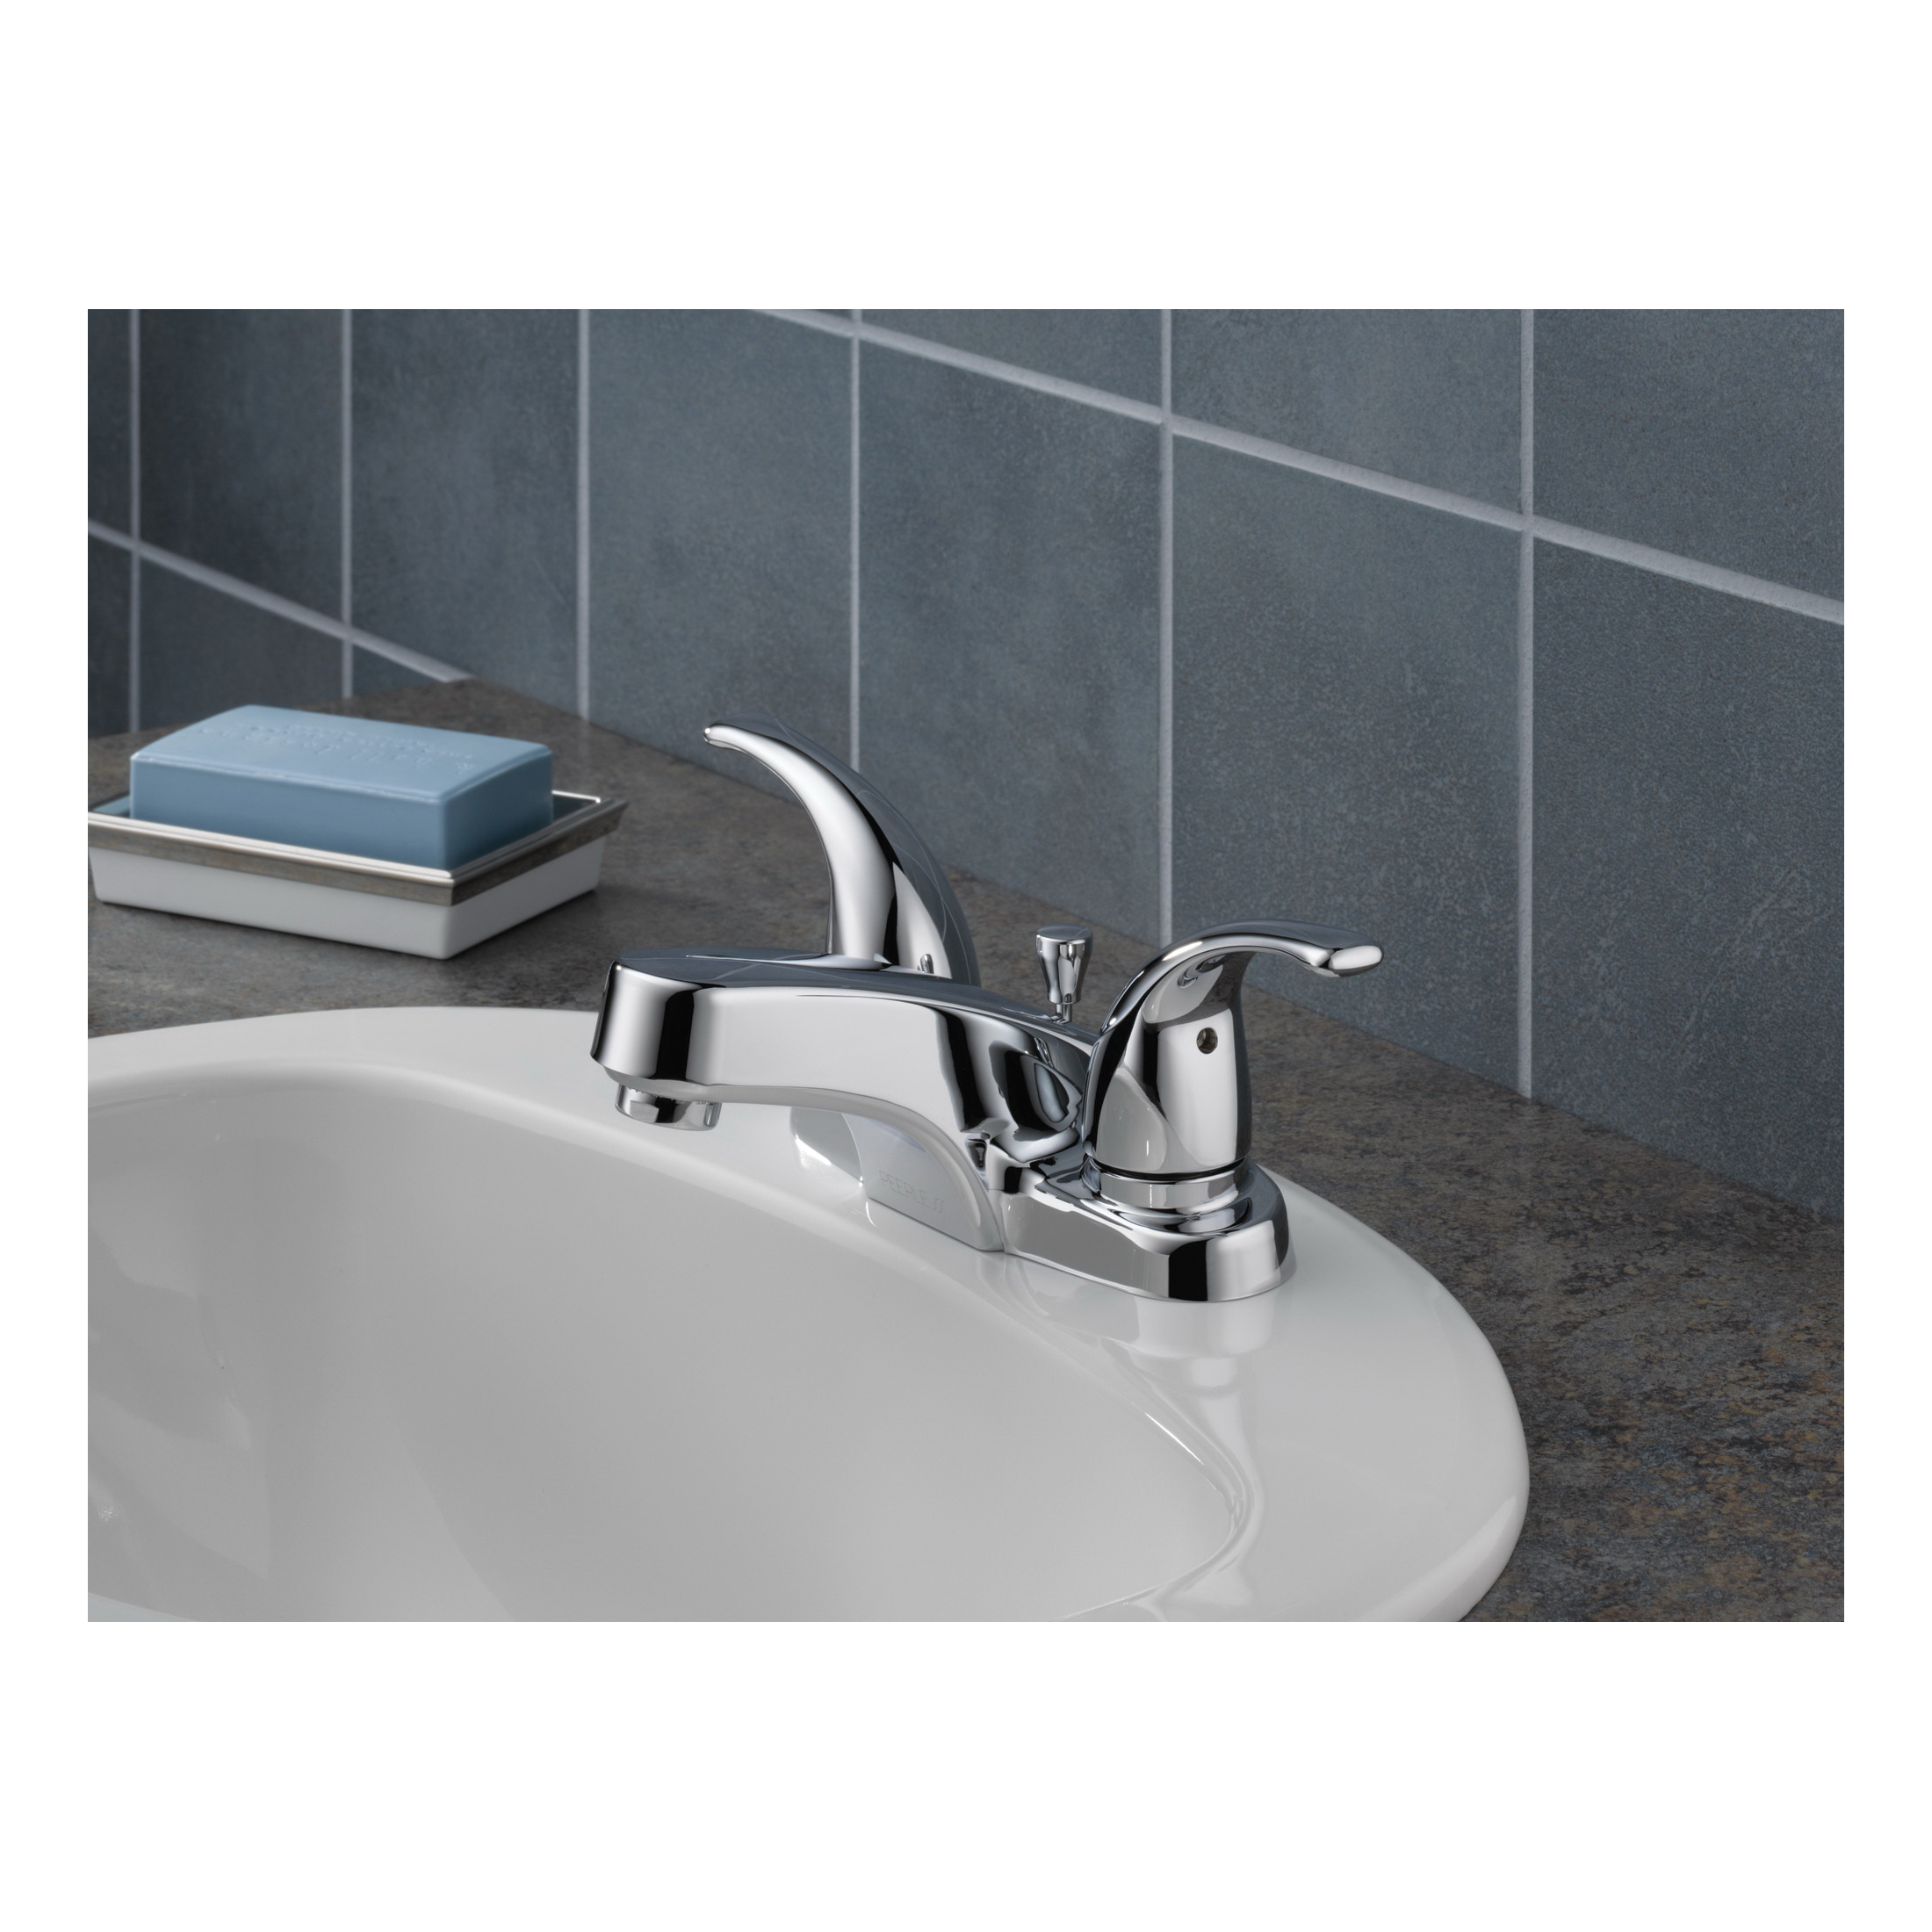 Peerless® P299628LF Centerset Lavatory Faucet, Chrome Plated, 2 Handles, Plastic Pop-Up Drain, 1.2 gpm, Import